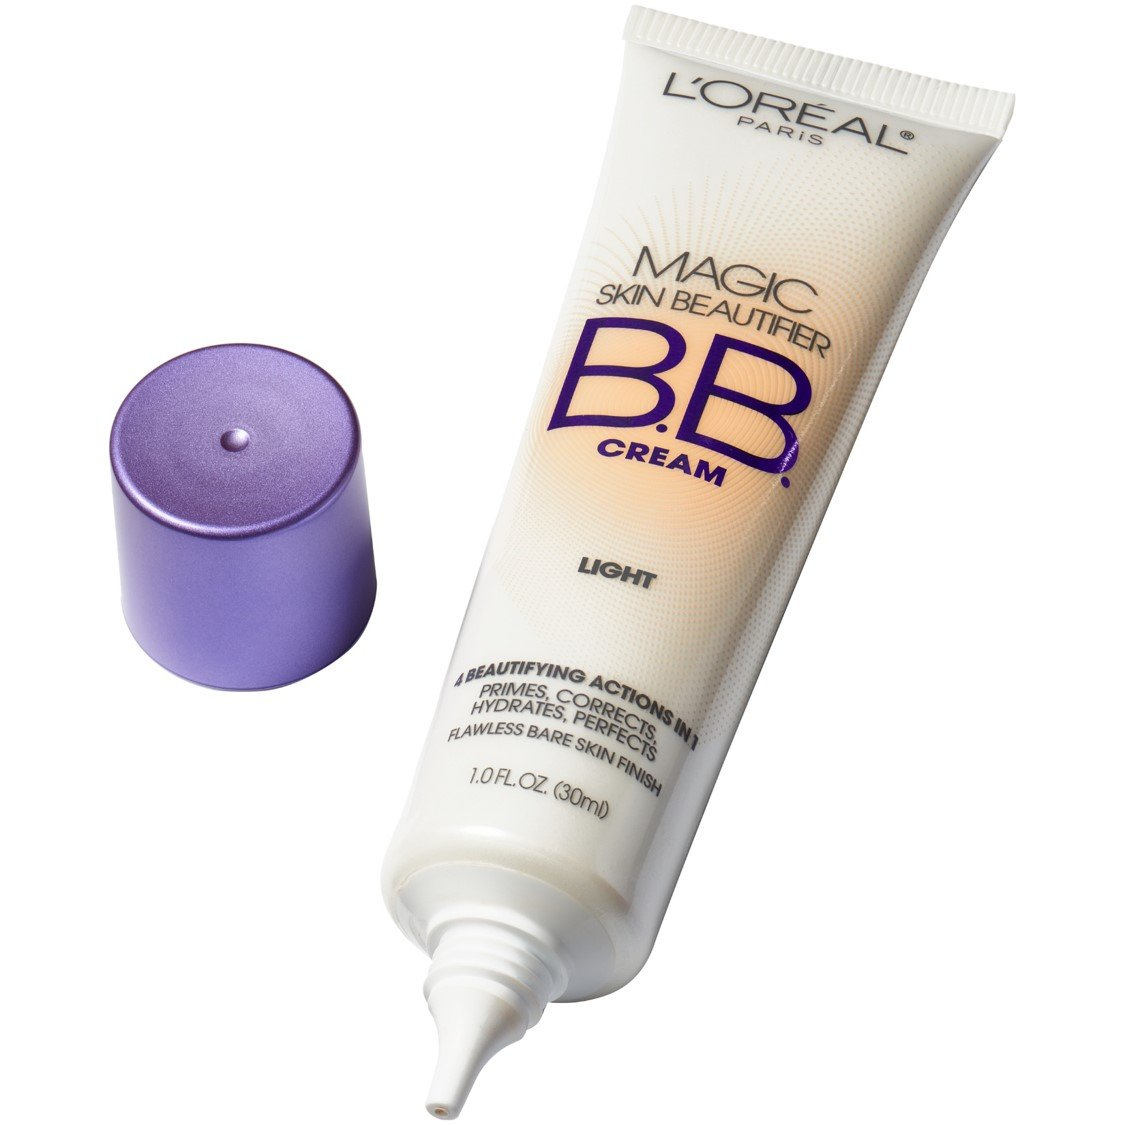 LOreal Paris Magic Skin Beautifier BB Cream, Light, 1.0 Fluid Ounce by LOreal Paris: Amazon.es: Salud y cuidado personal